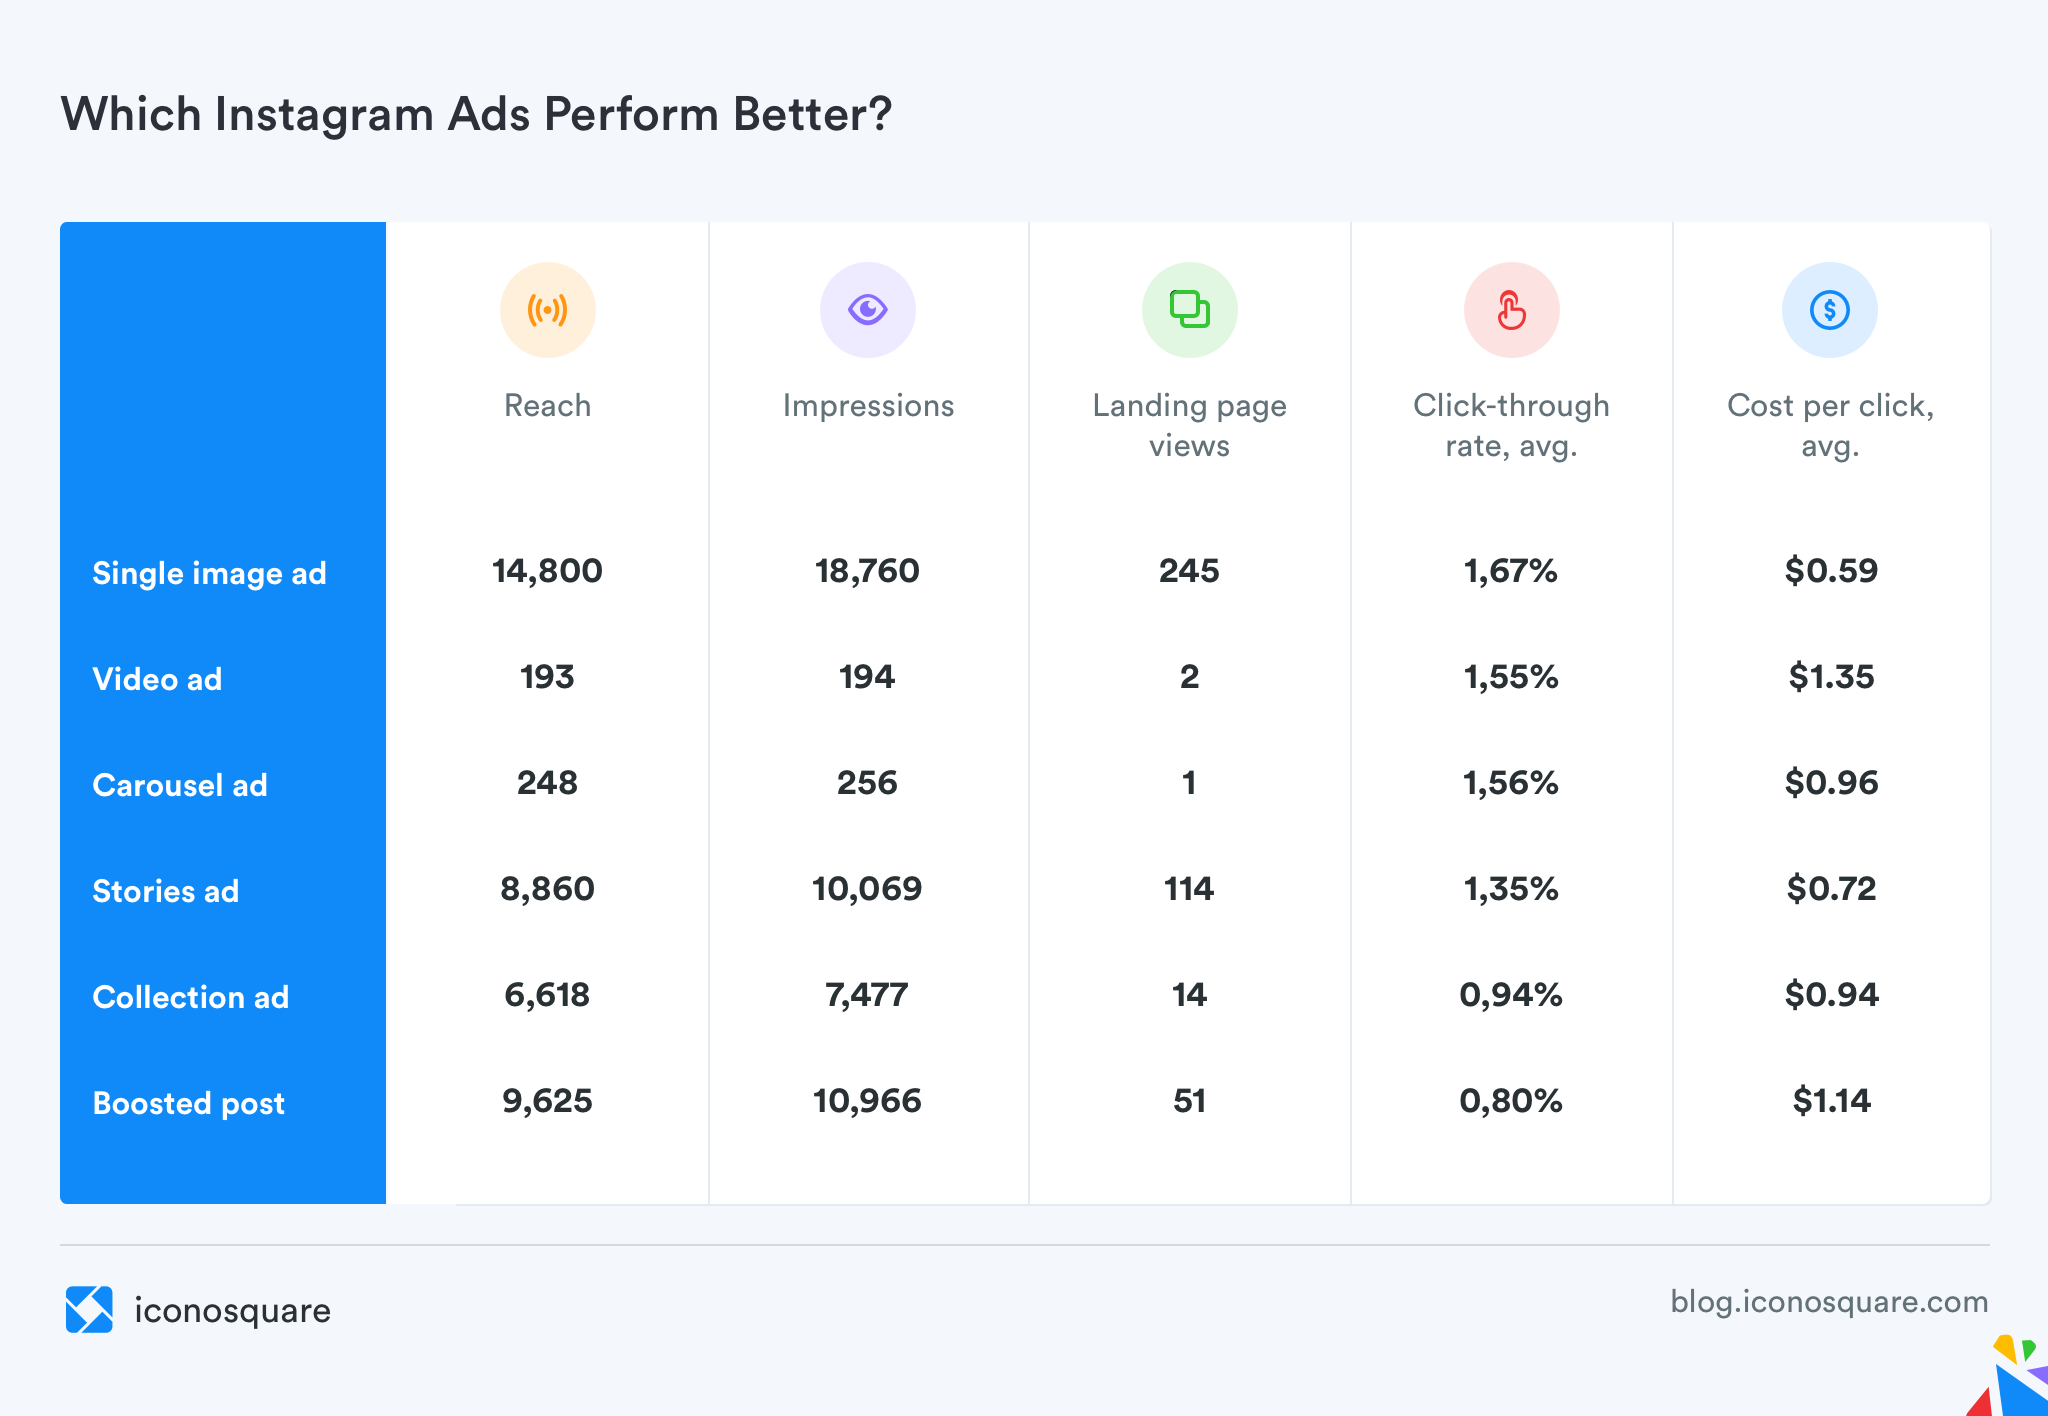 Which Instagram ads are better